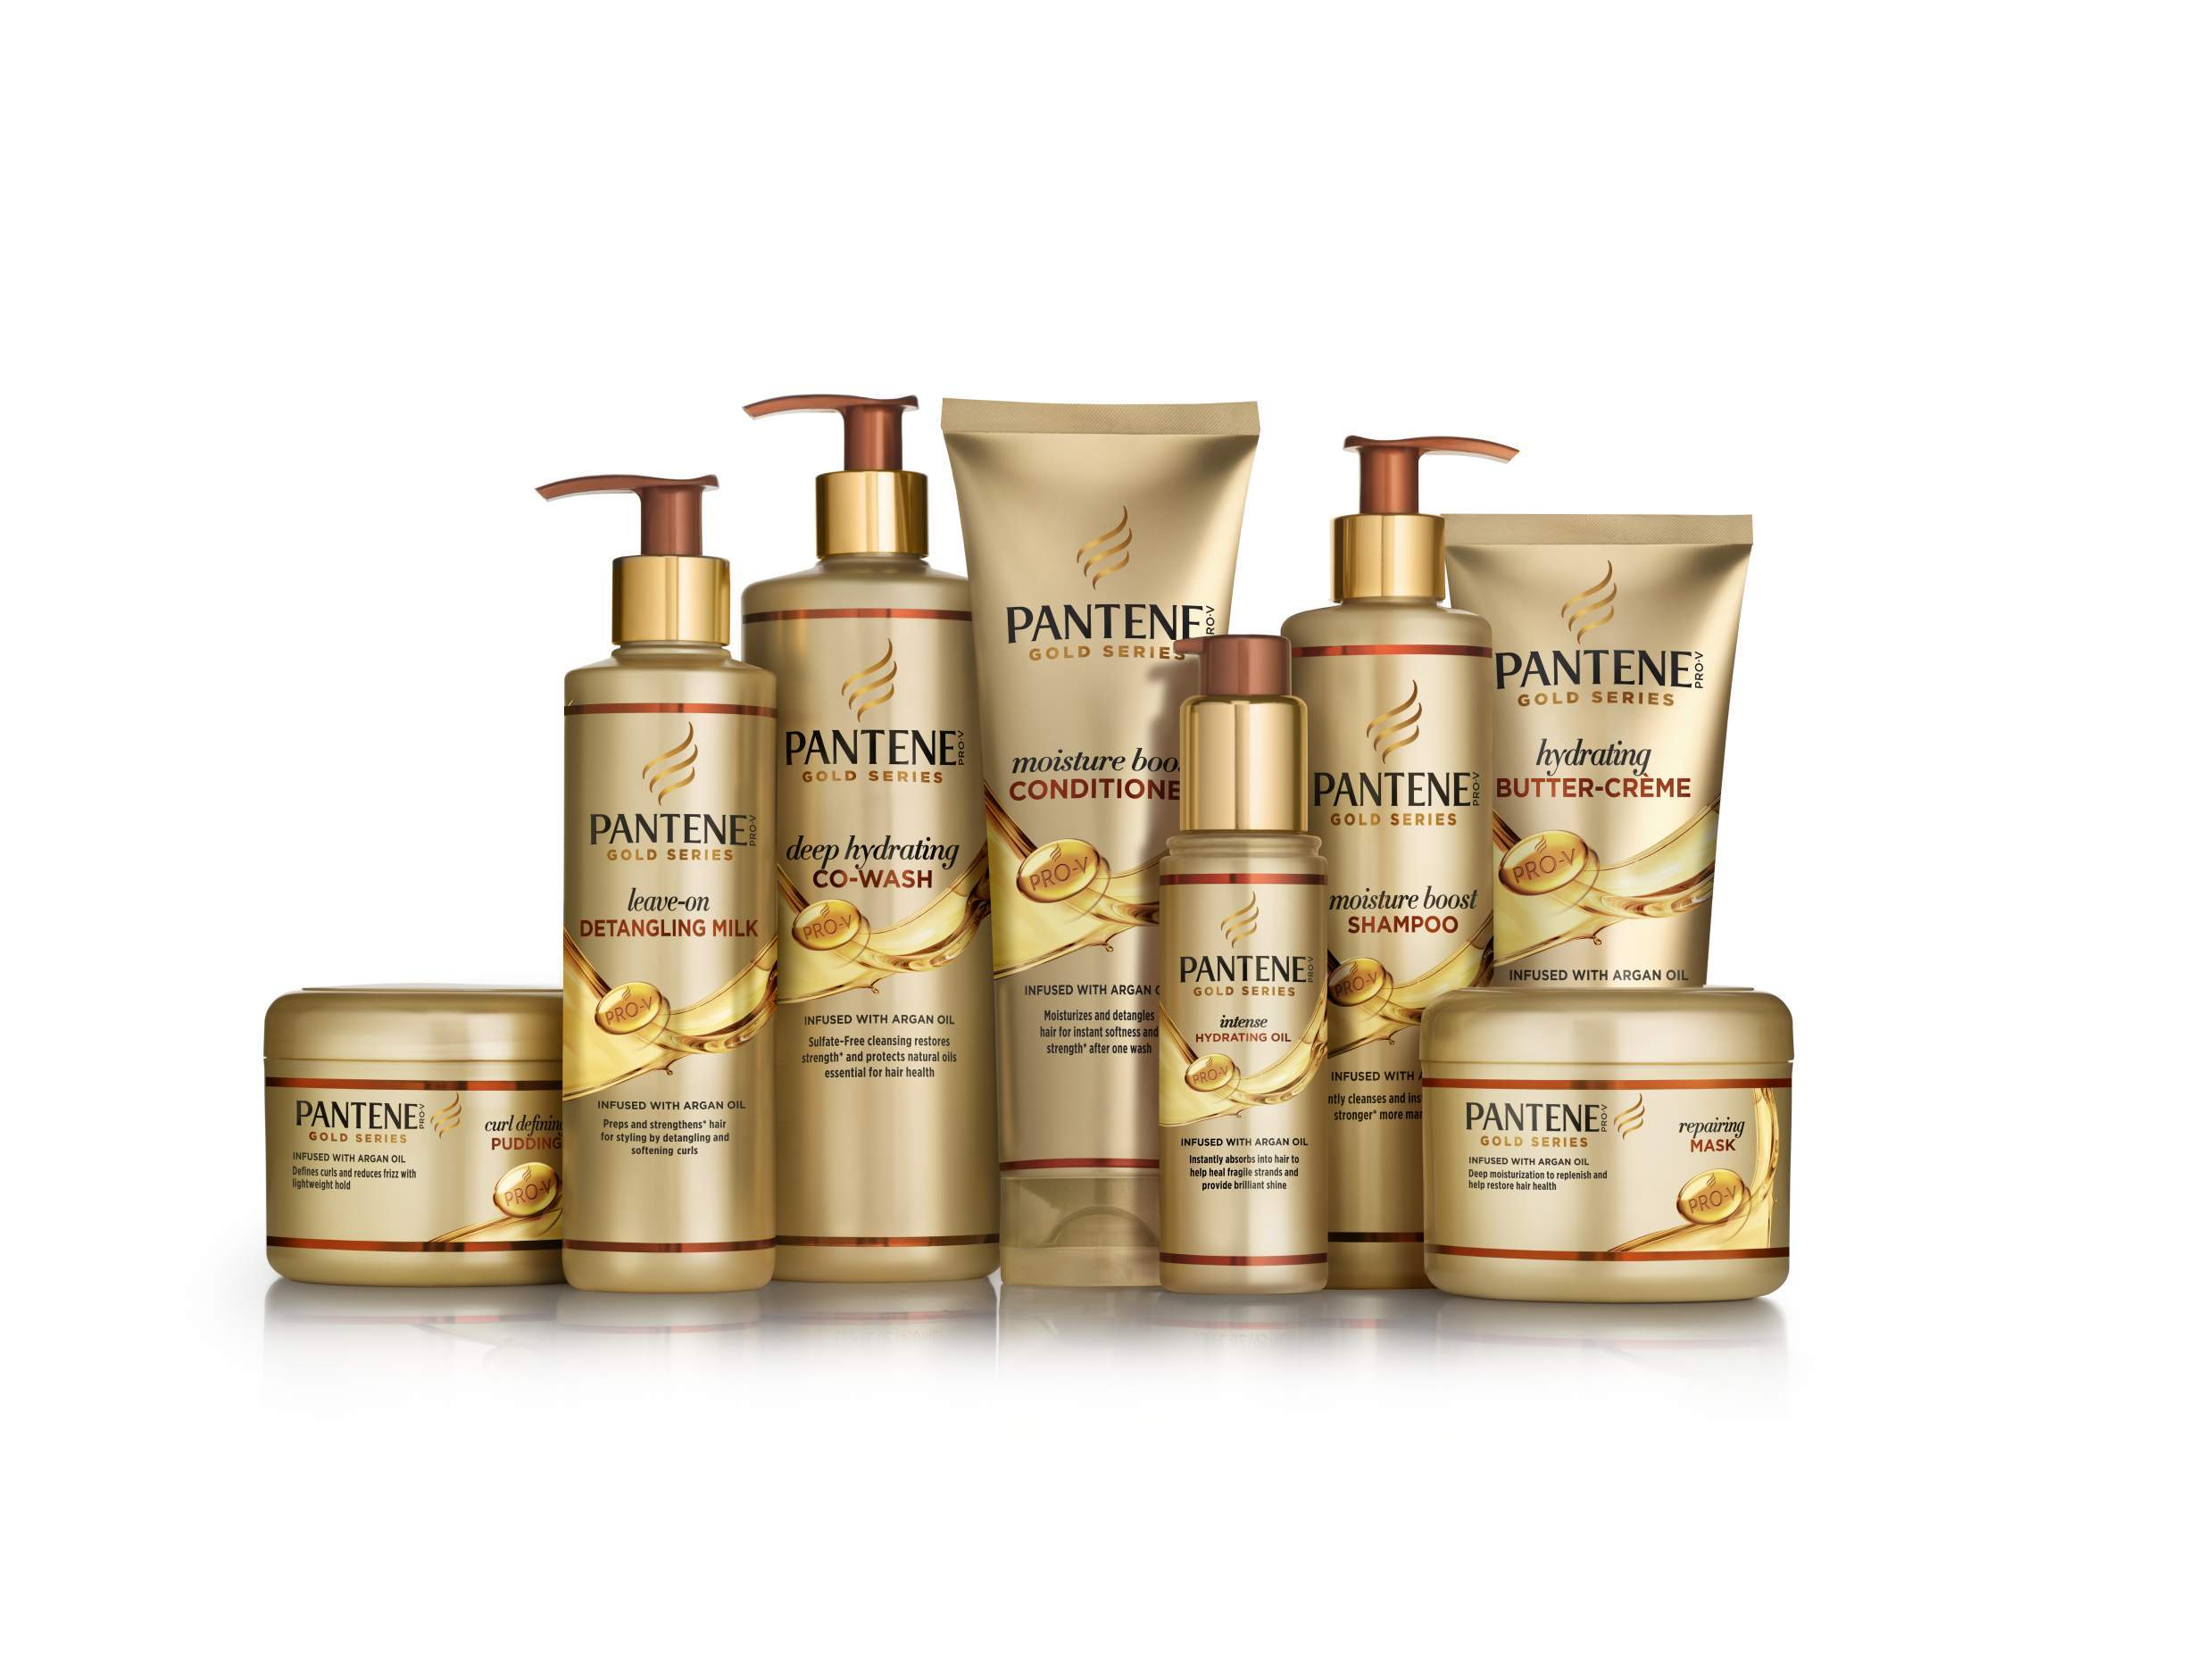 Pantene Celebrates Diversity With Powerful All Strong